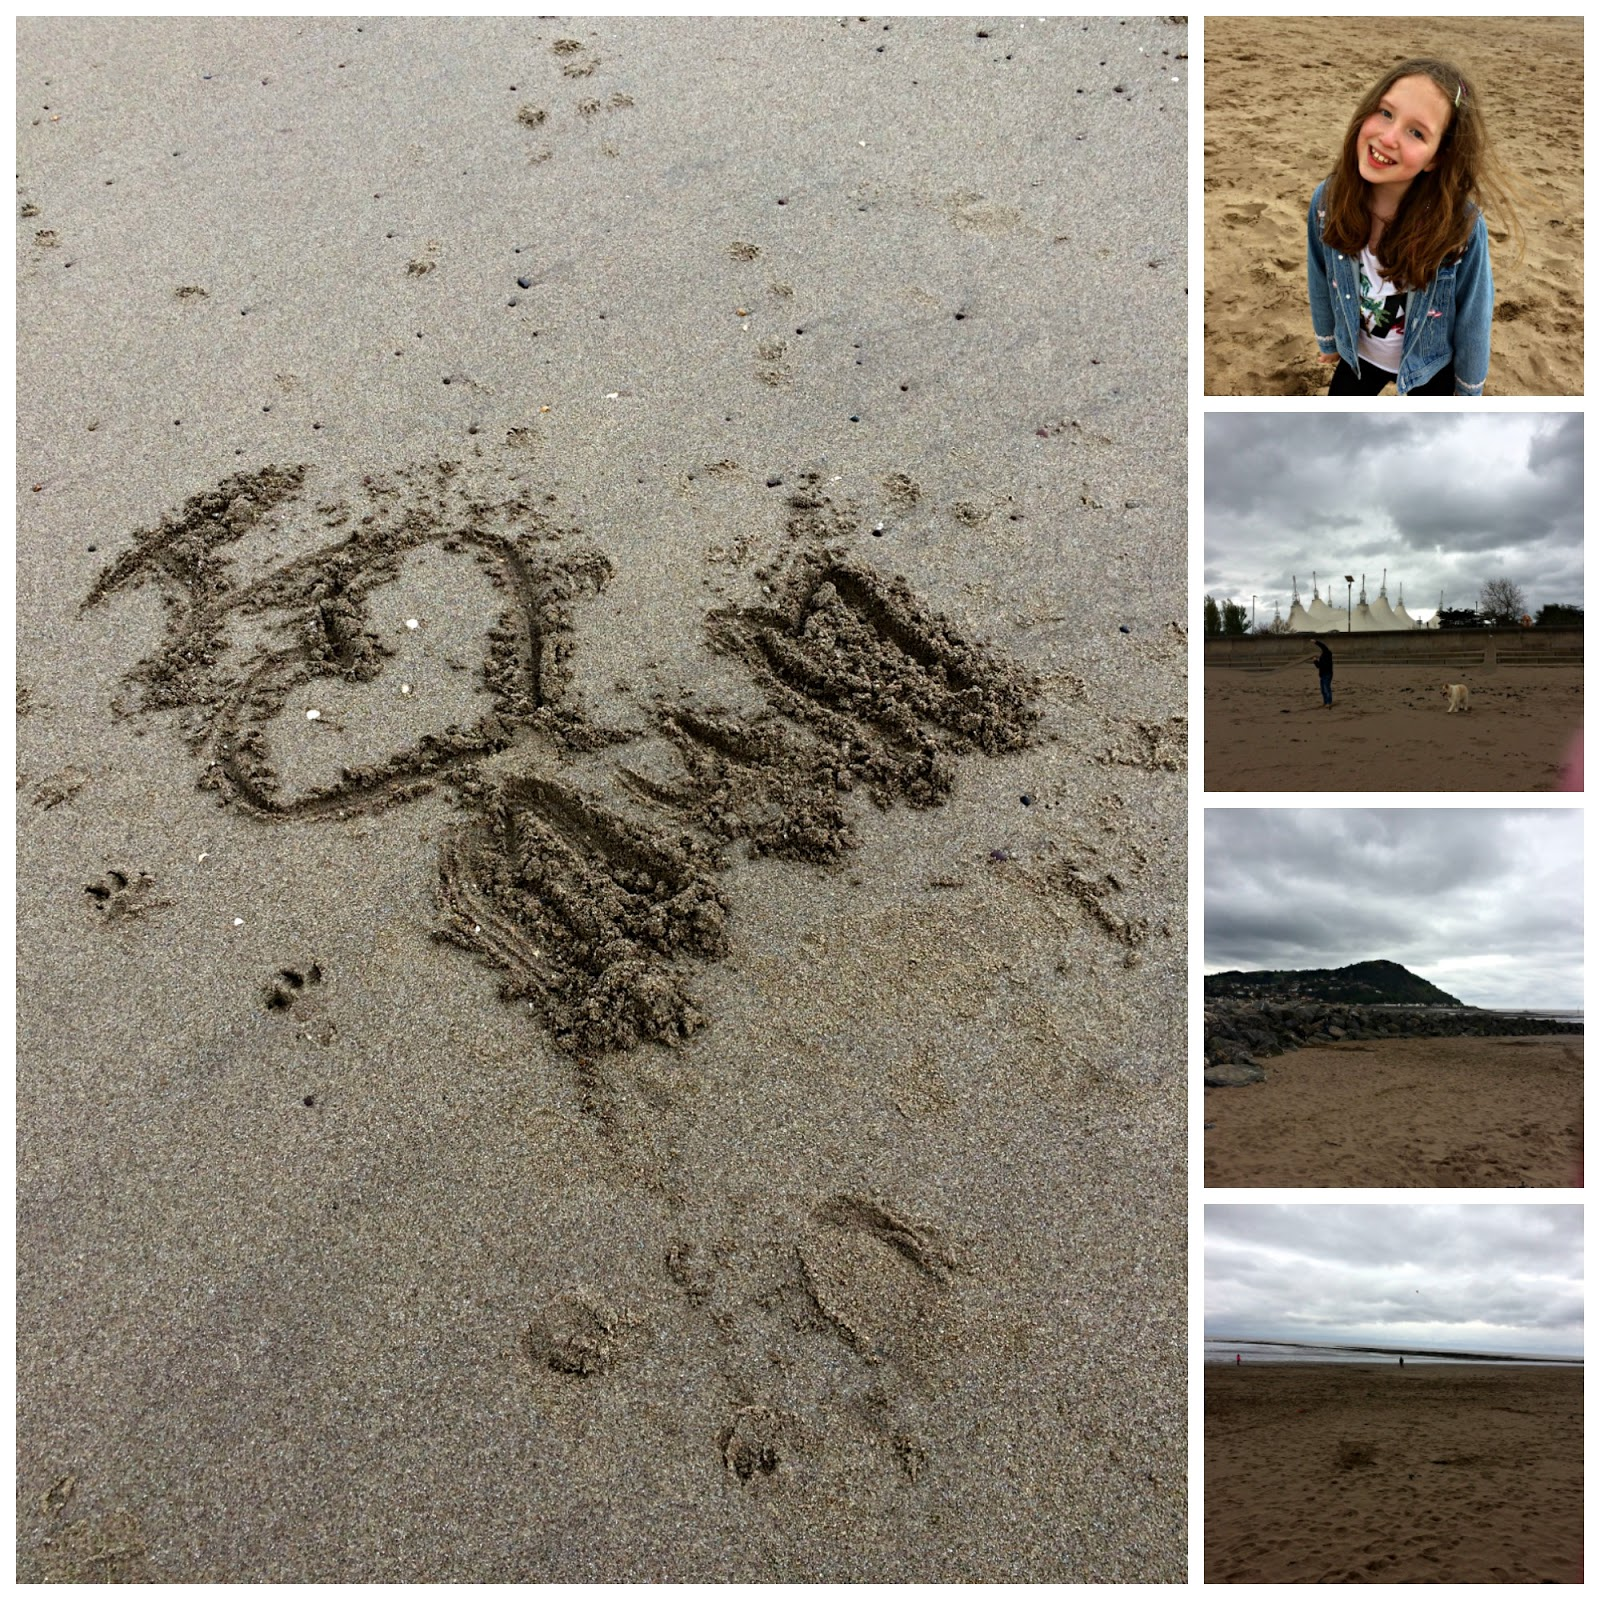 Collage of Minehead Beach with Caitlin